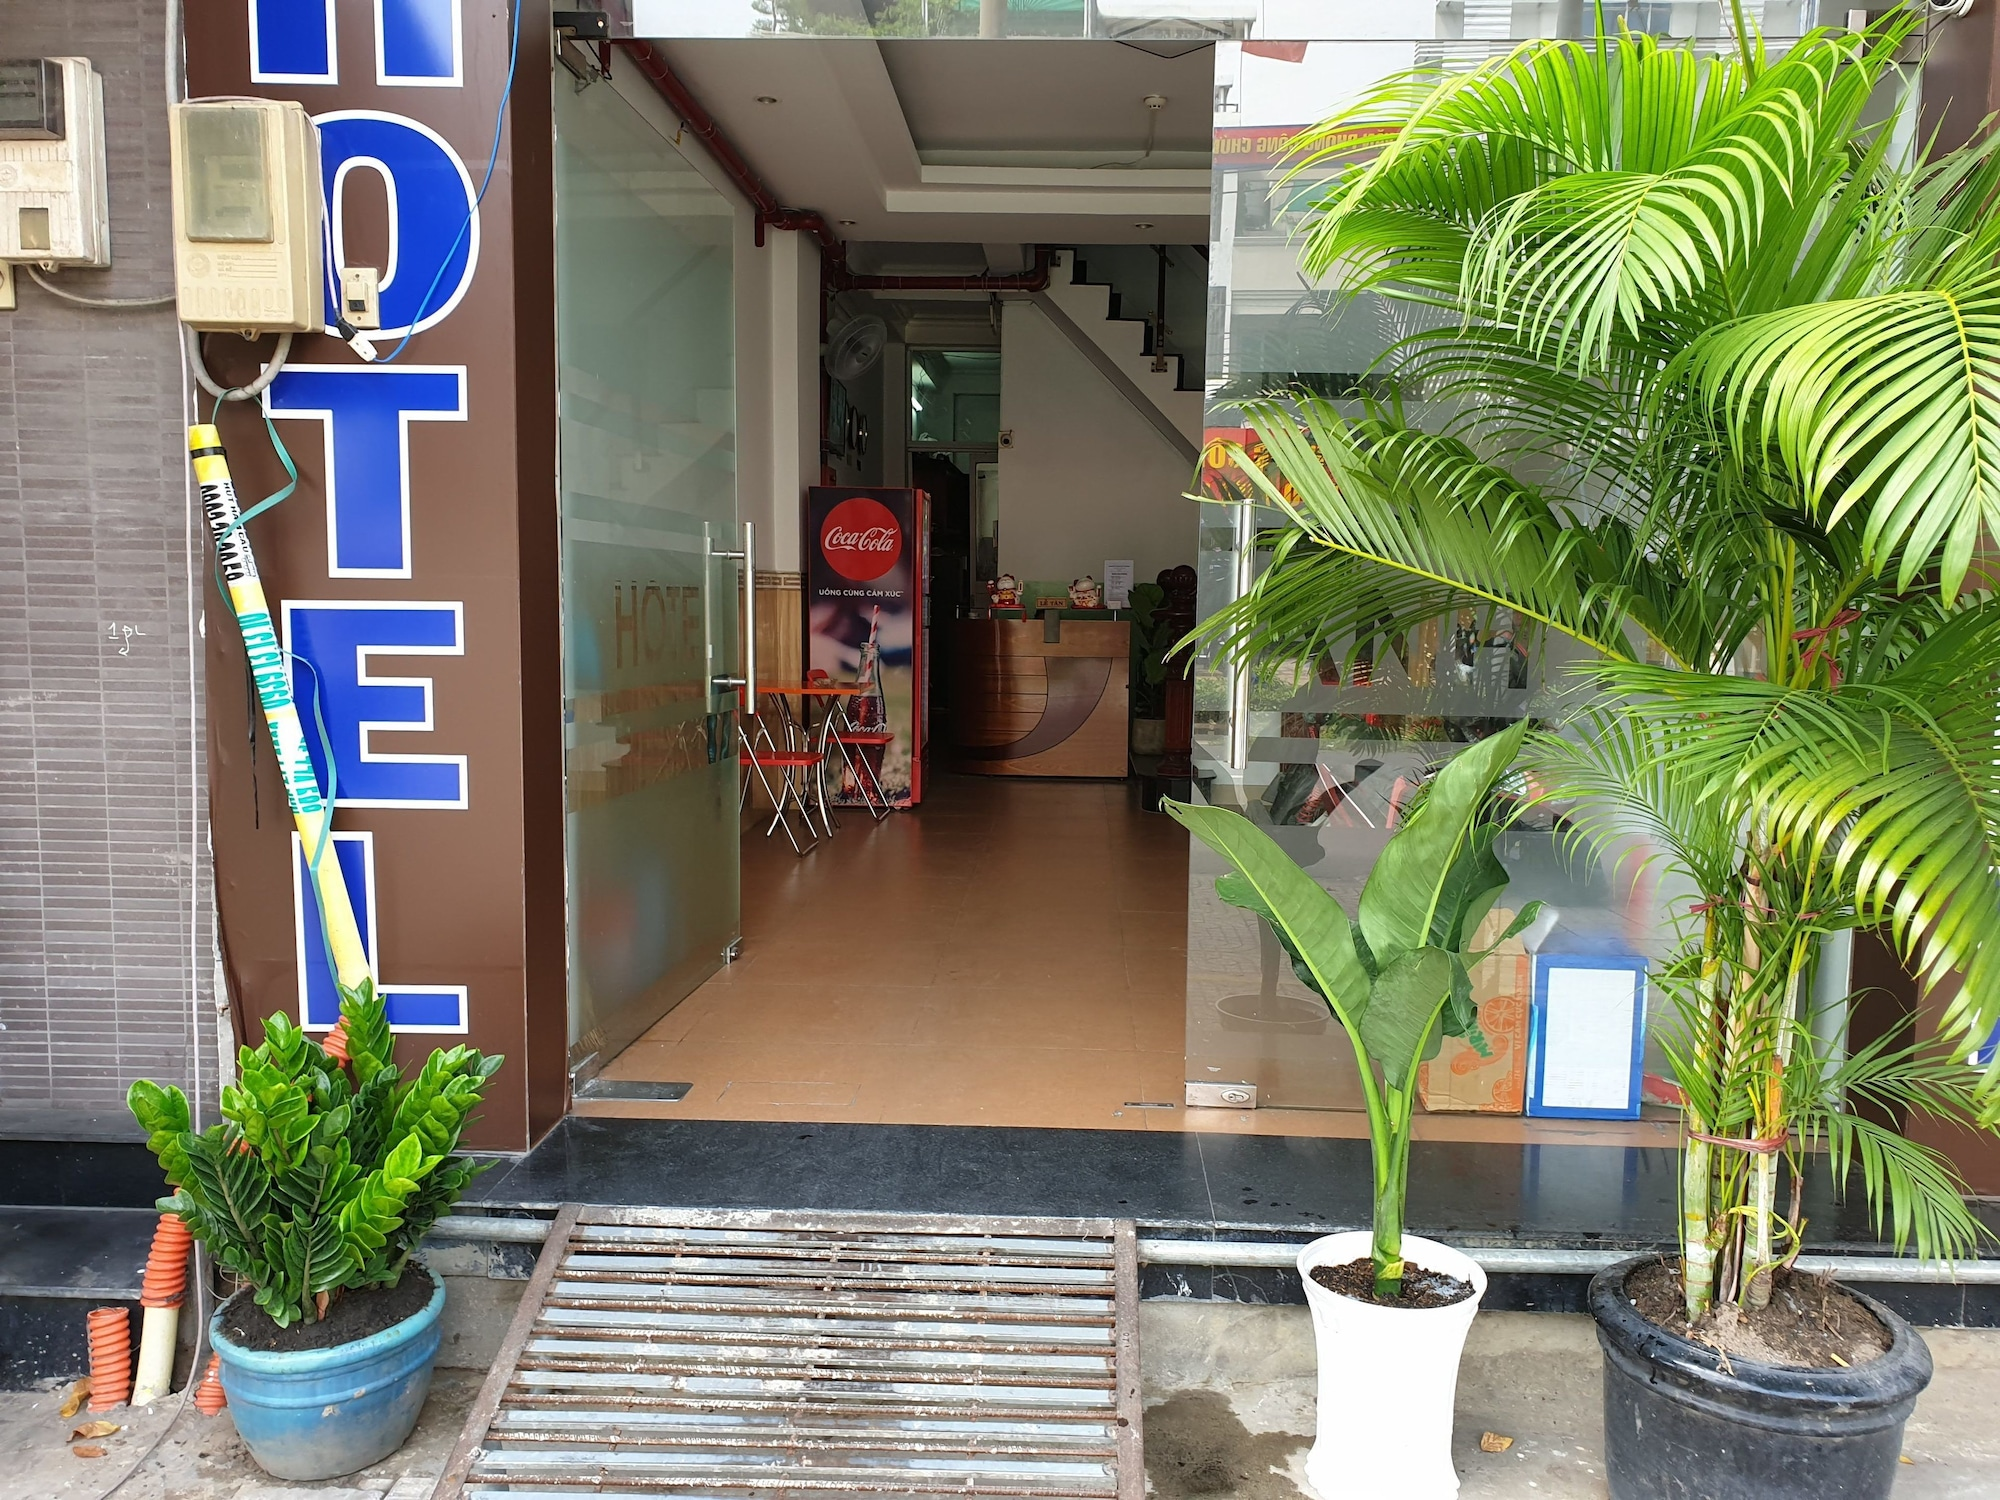 Hotel Anh Thu, Quận 11